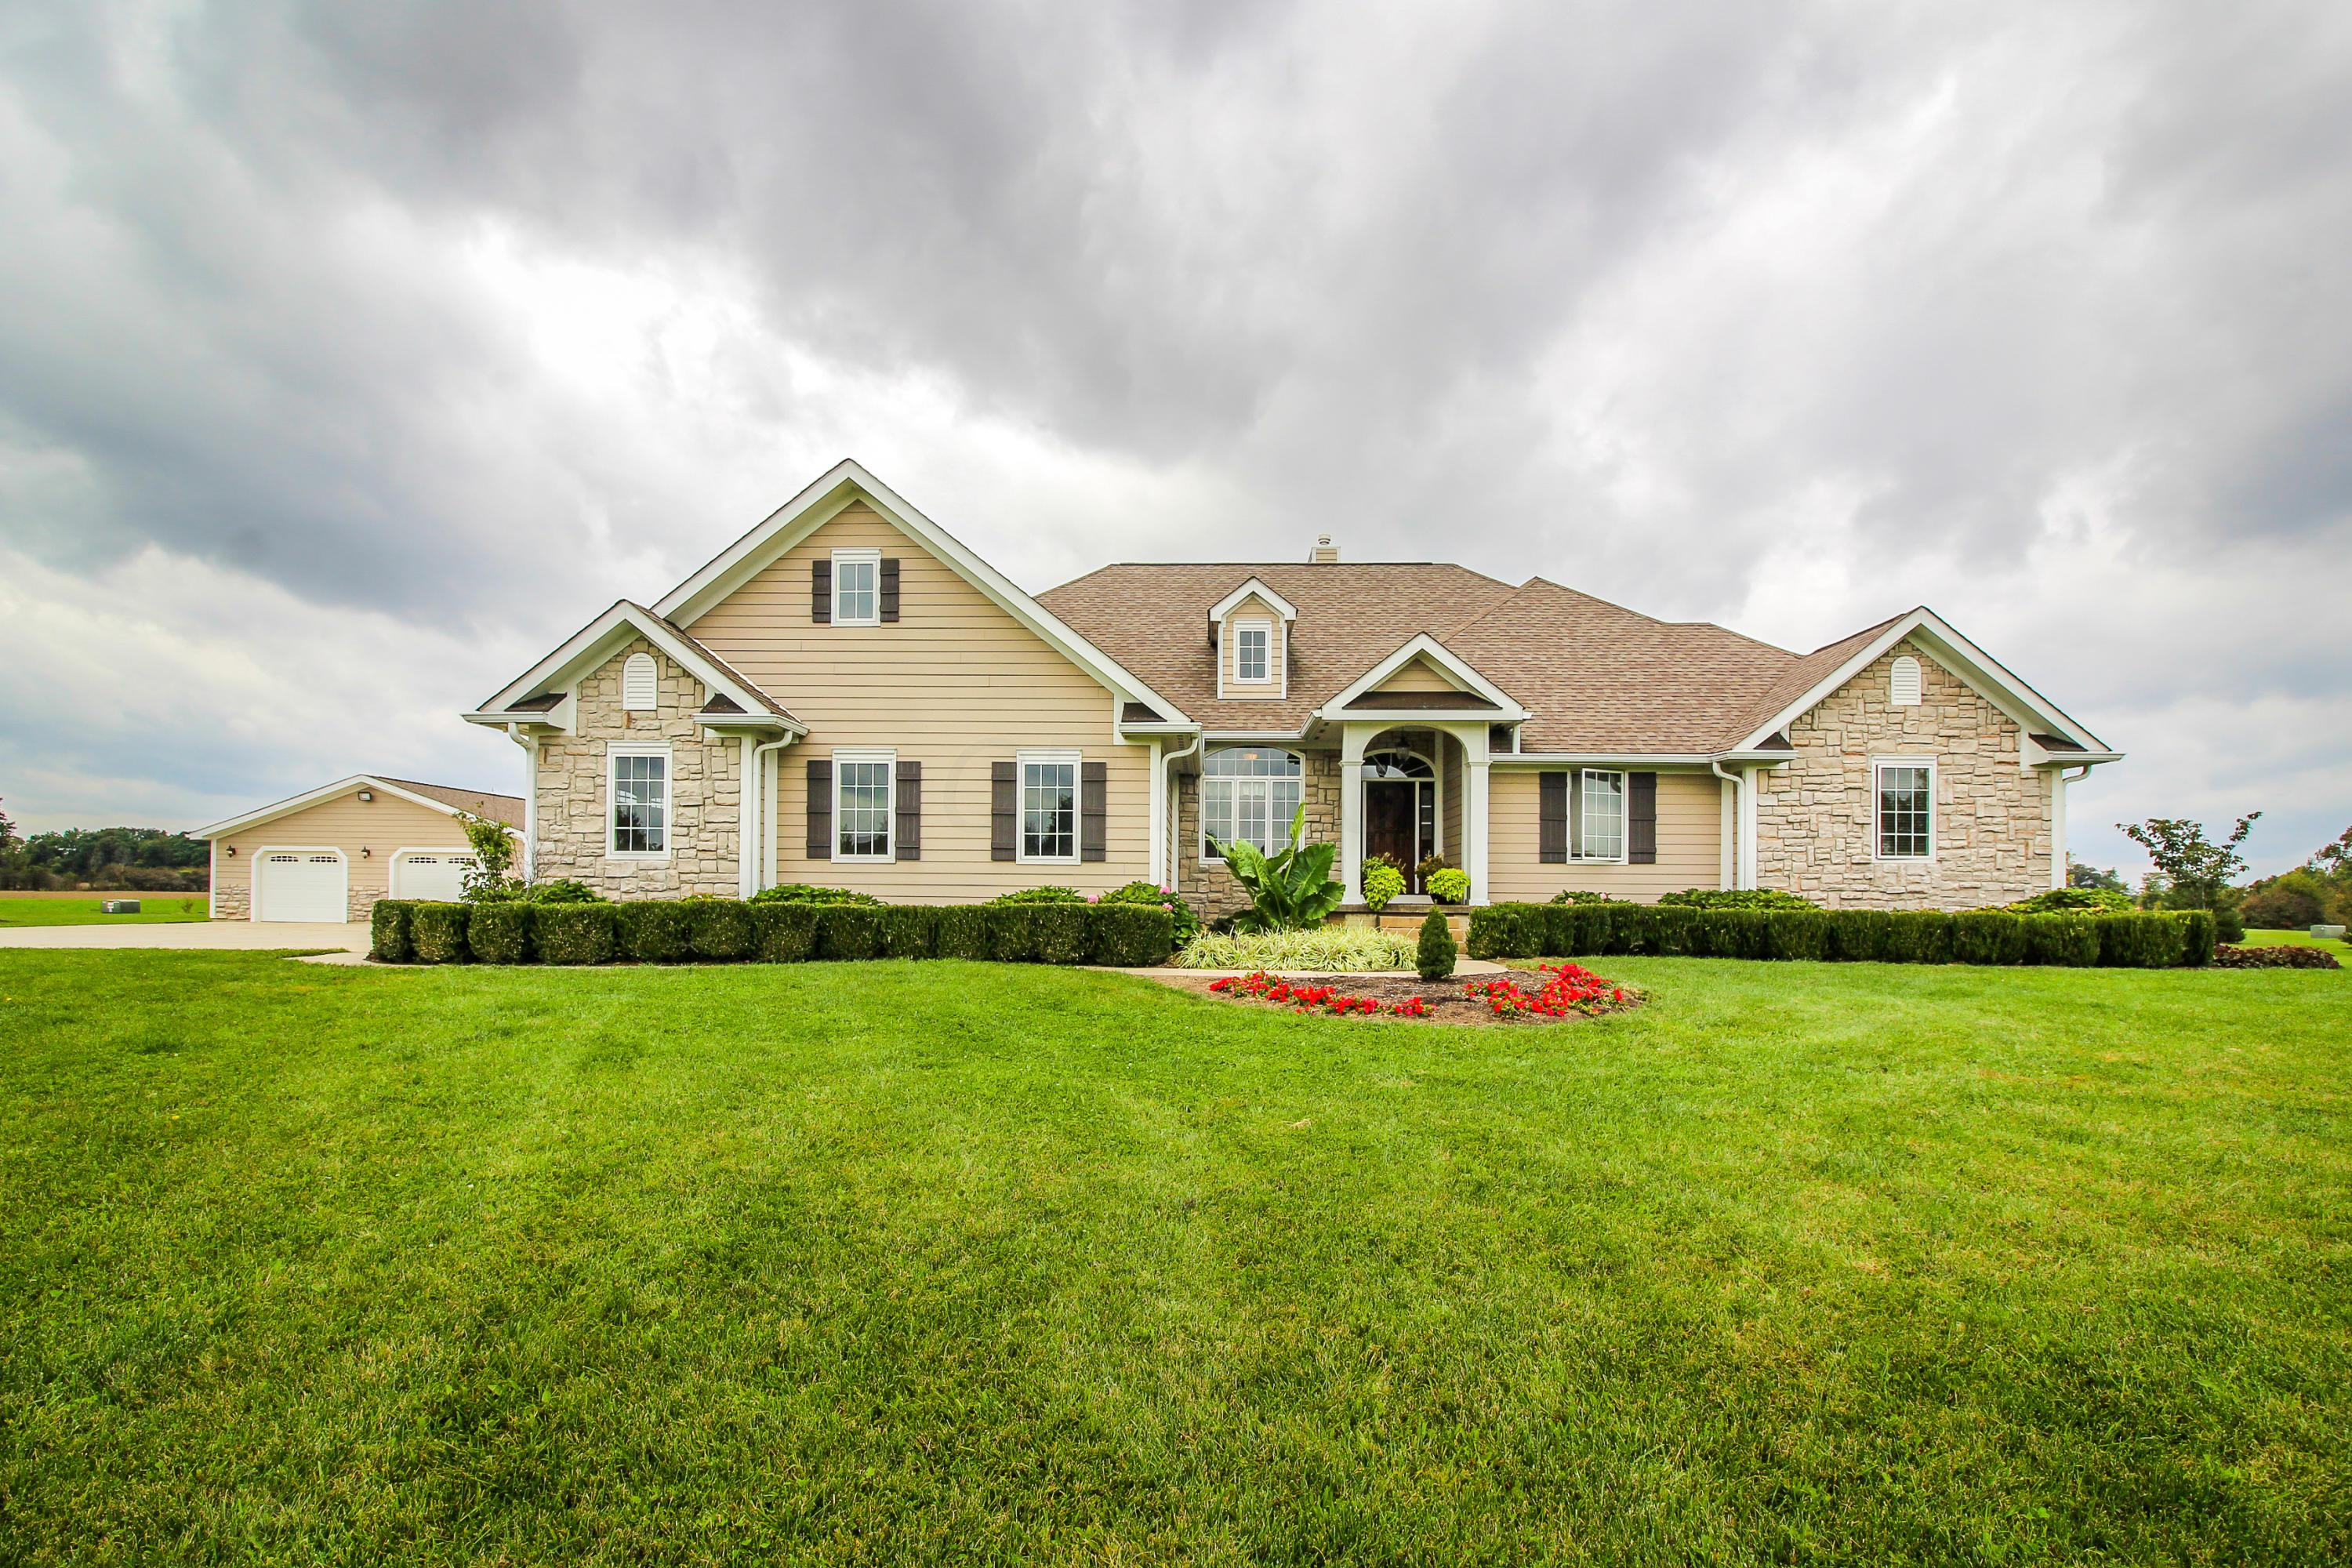 27299 Ford Reed Road, Richwood, OH 43344